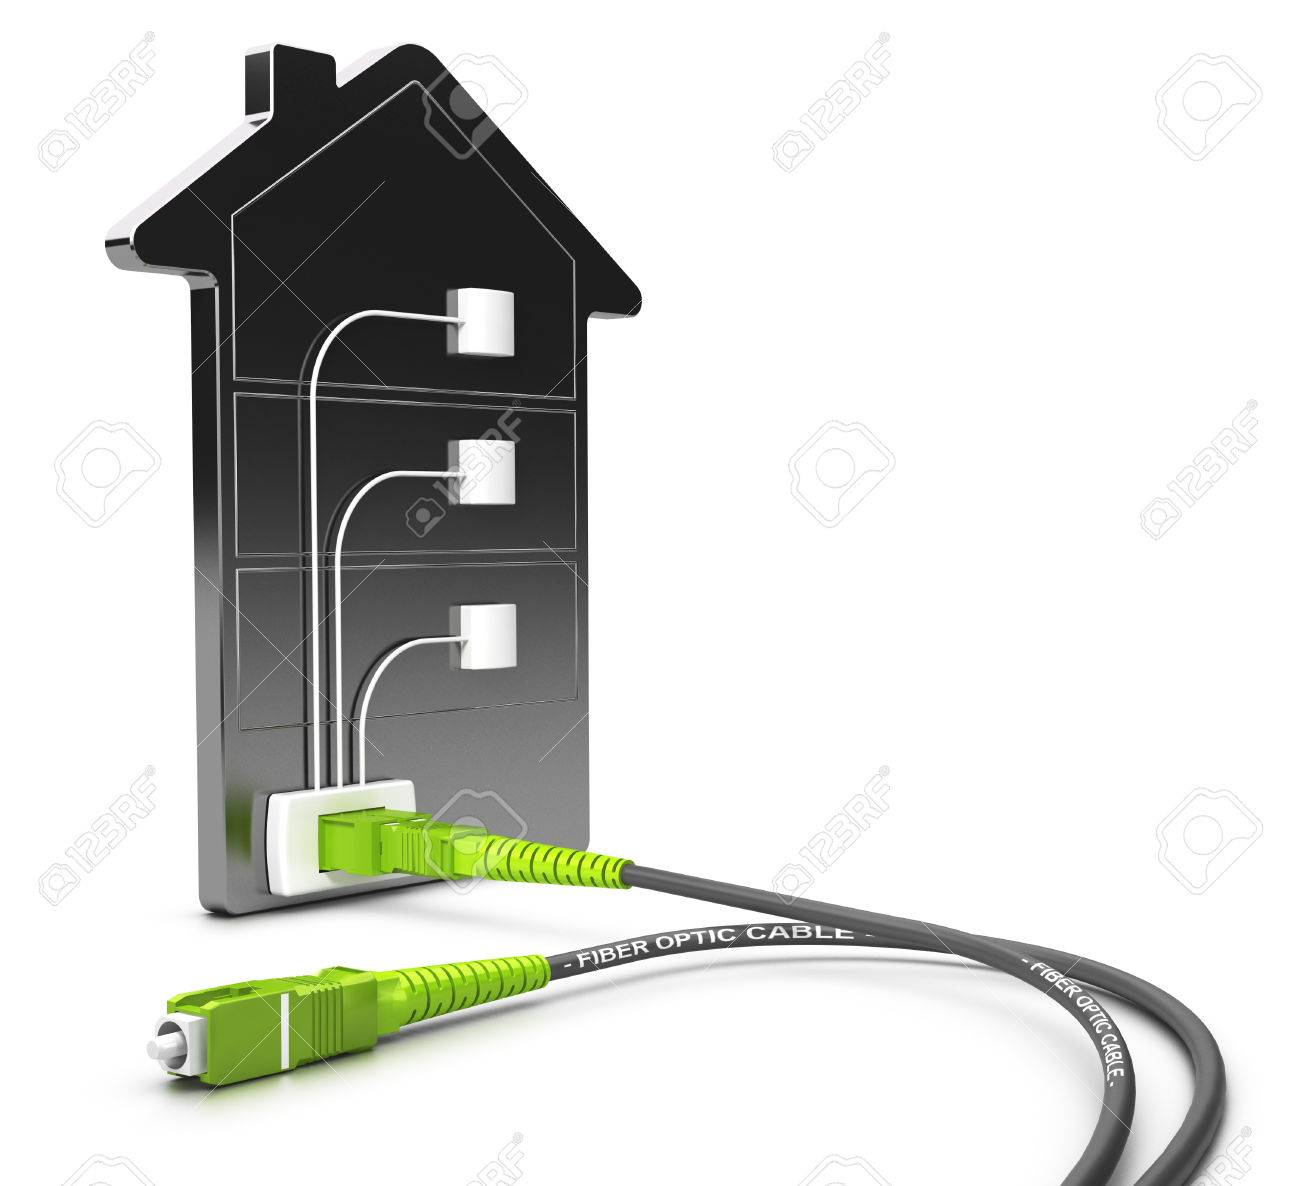 Fiber Optic Wiring In House Free Download Wiring Diagrams Pictures